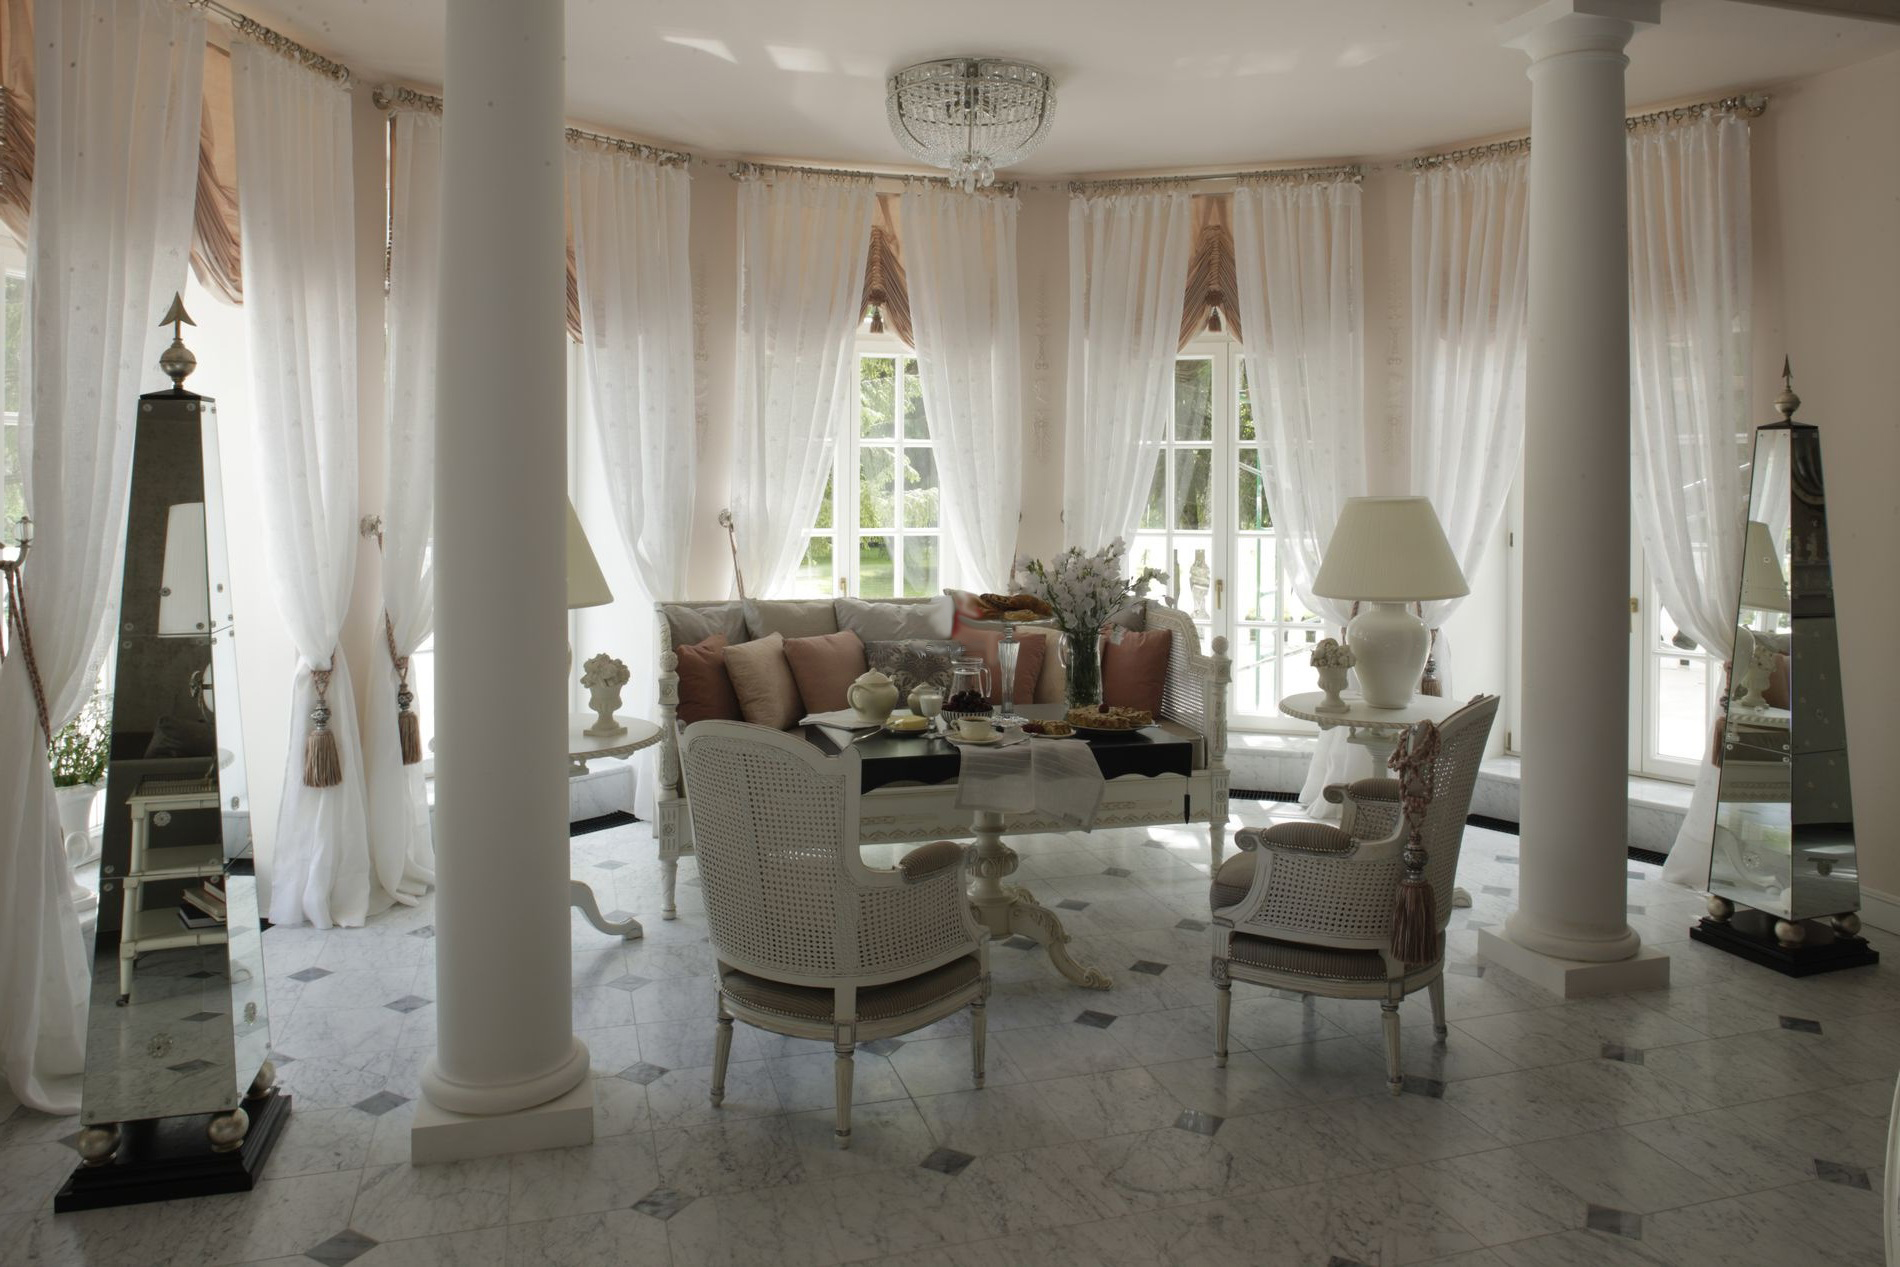 french-style-in-interior-3